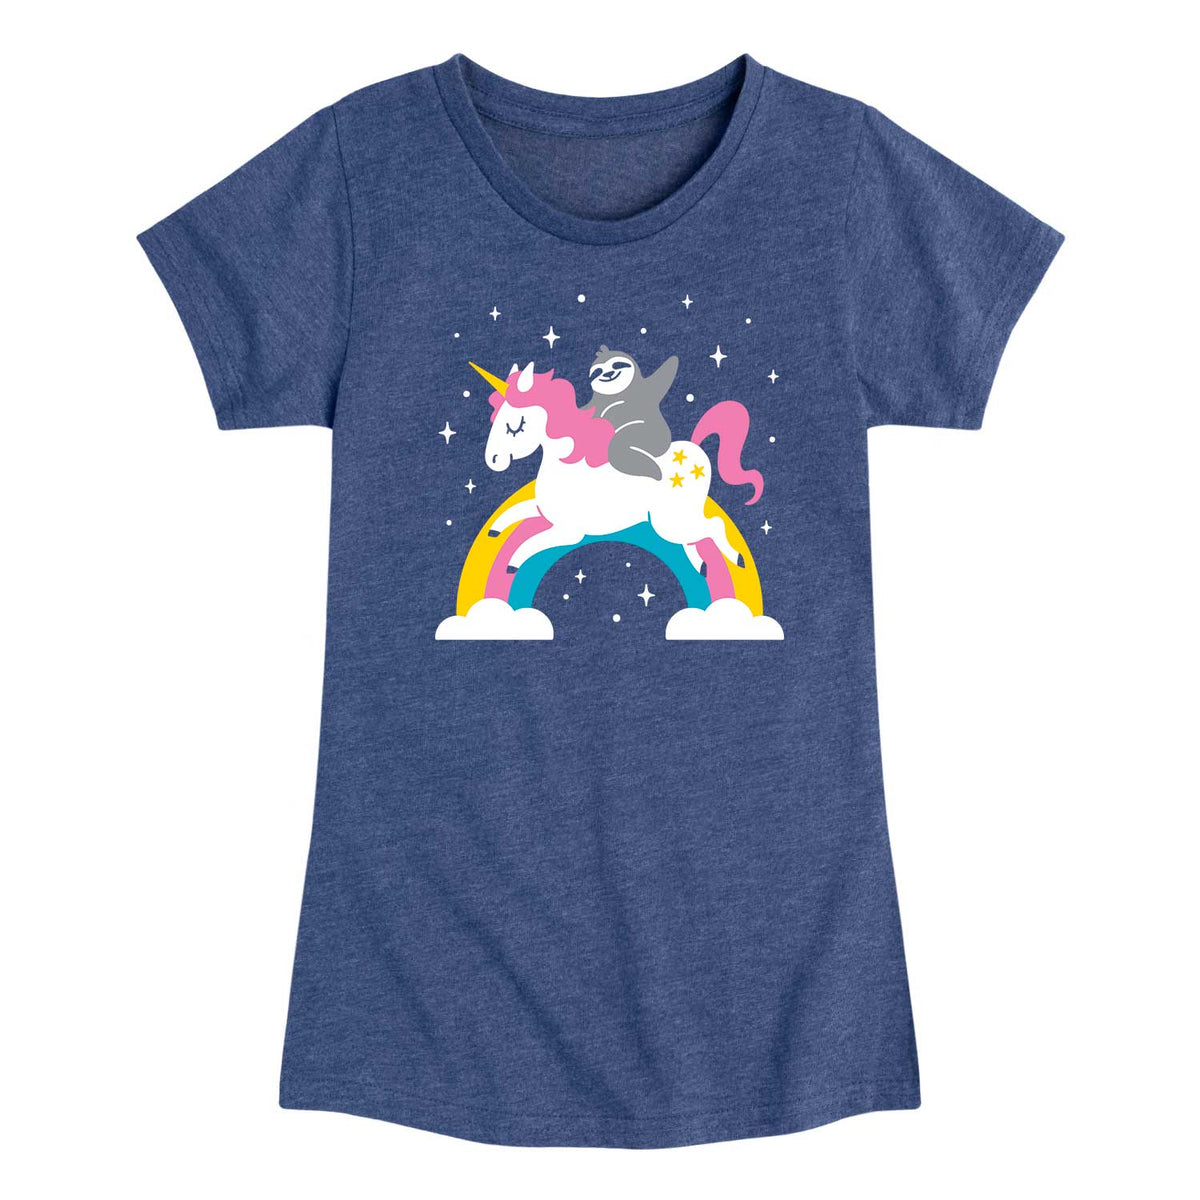 Sloth Riding Unicorn - Youth & Toddler Girls Short Sleeve T-Shirt